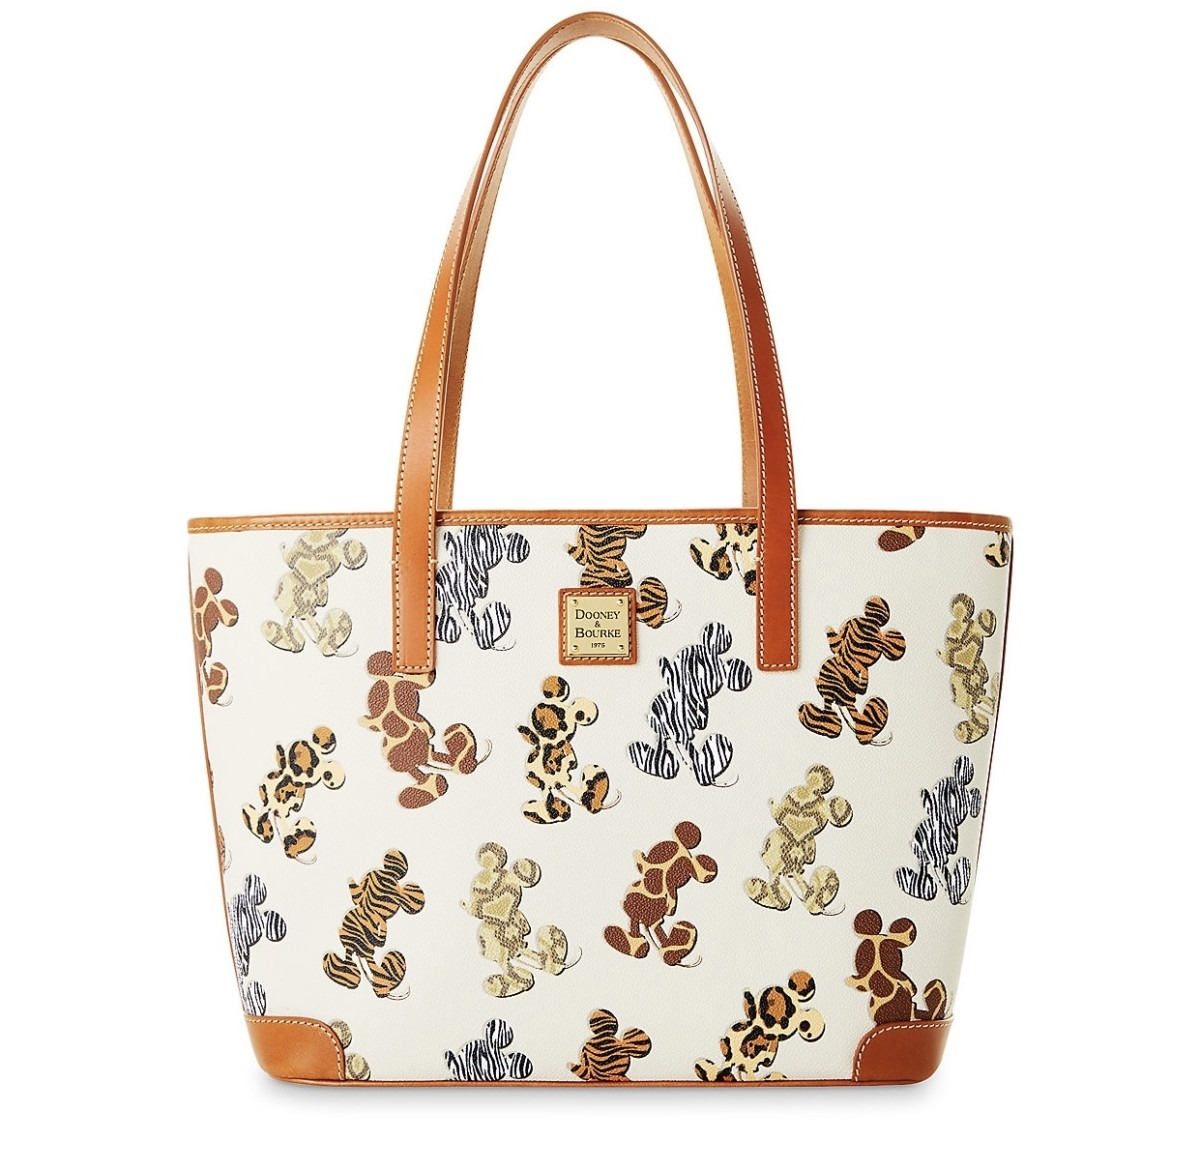 New Disney Dooney & Bourke Handbags Now on shopDisney! 4